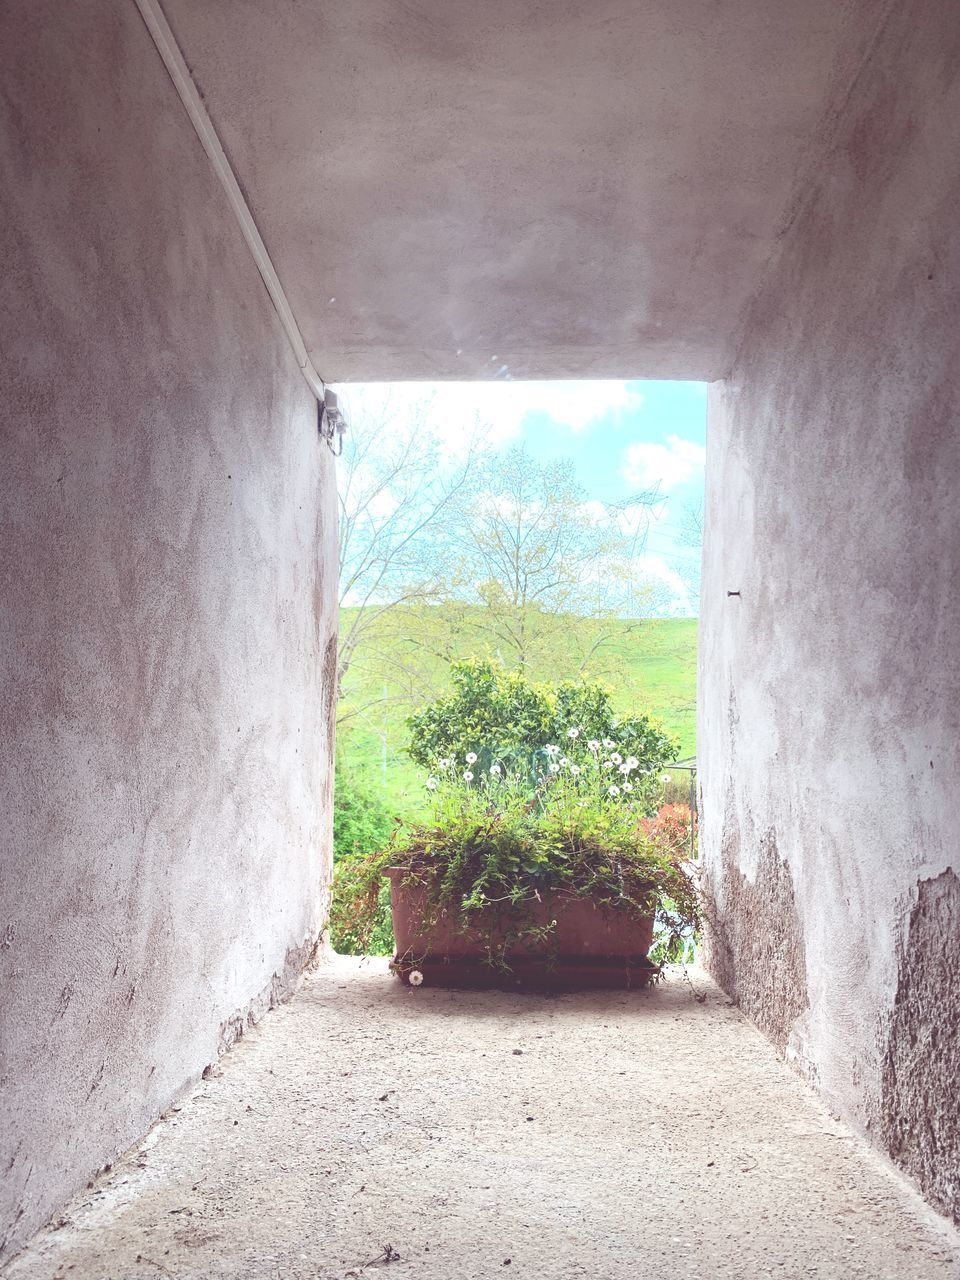 architecture, built structure, wall - building feature, the way forward, no people, day, direction, plant, indoors, building, nature, tree, empty, entrance, sky, window, tunnel, arch, wall, ceiling, concrete